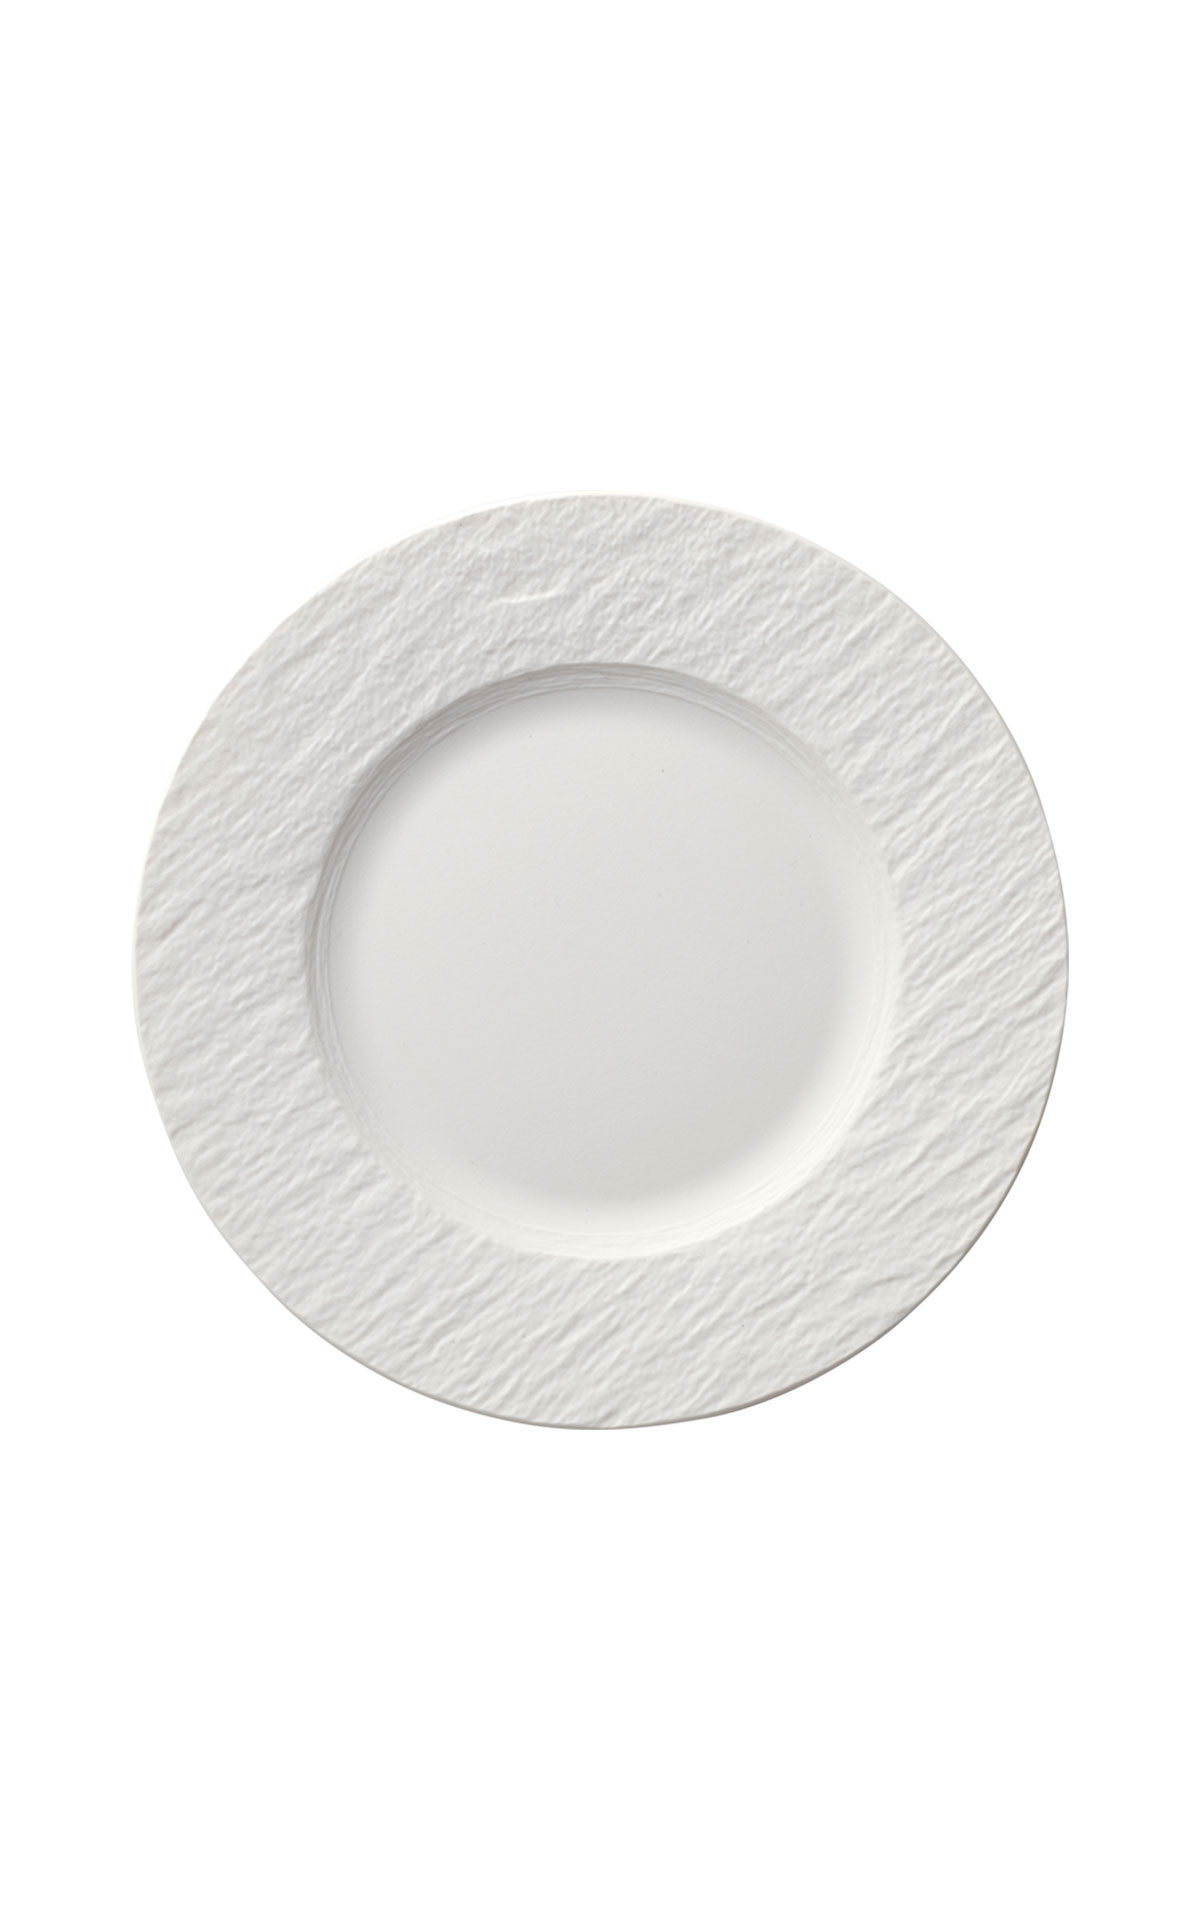 Villeroy and Boch Manufacture blanc flat plate 27cm from Bicester Village